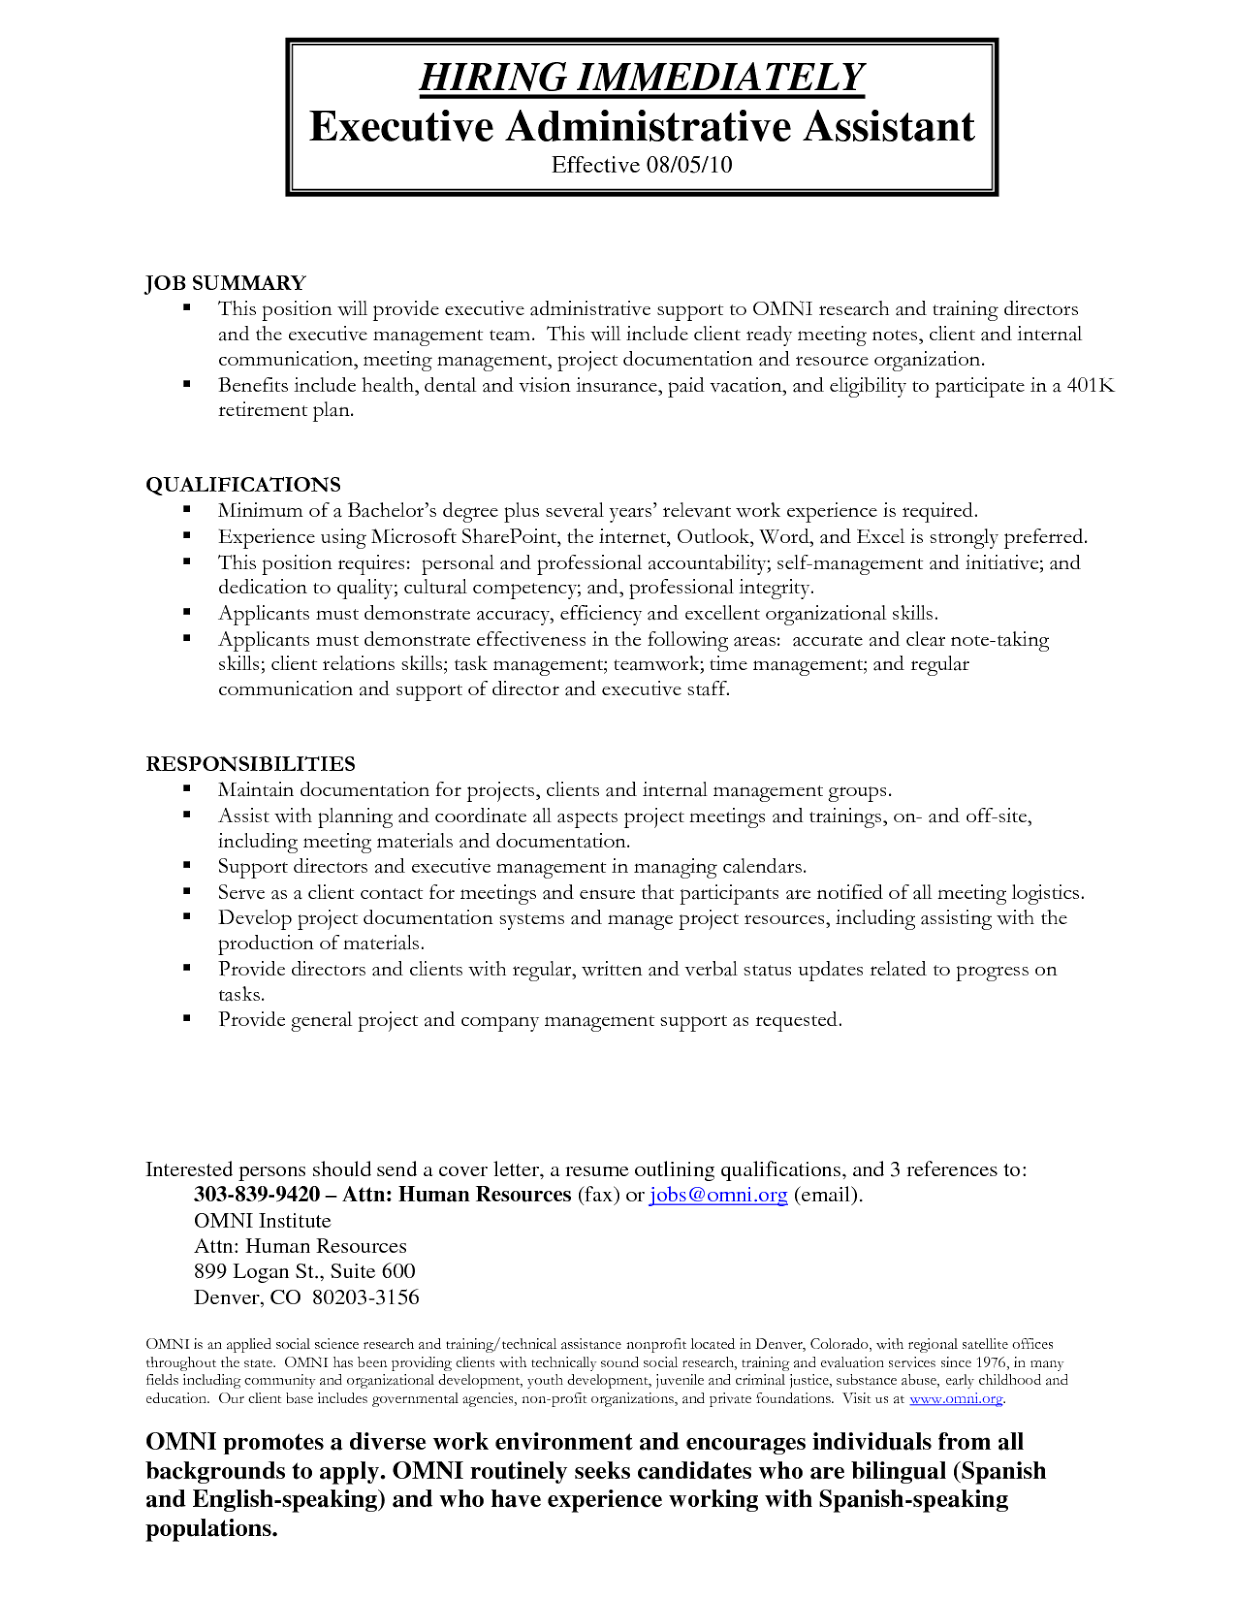 Medical Assistant Duties For Resume related for 8 medical assistant job description resume Sample Medical Assistant Duties Resume Singlepageresumecom Helper Legal Assistant Resume Samples